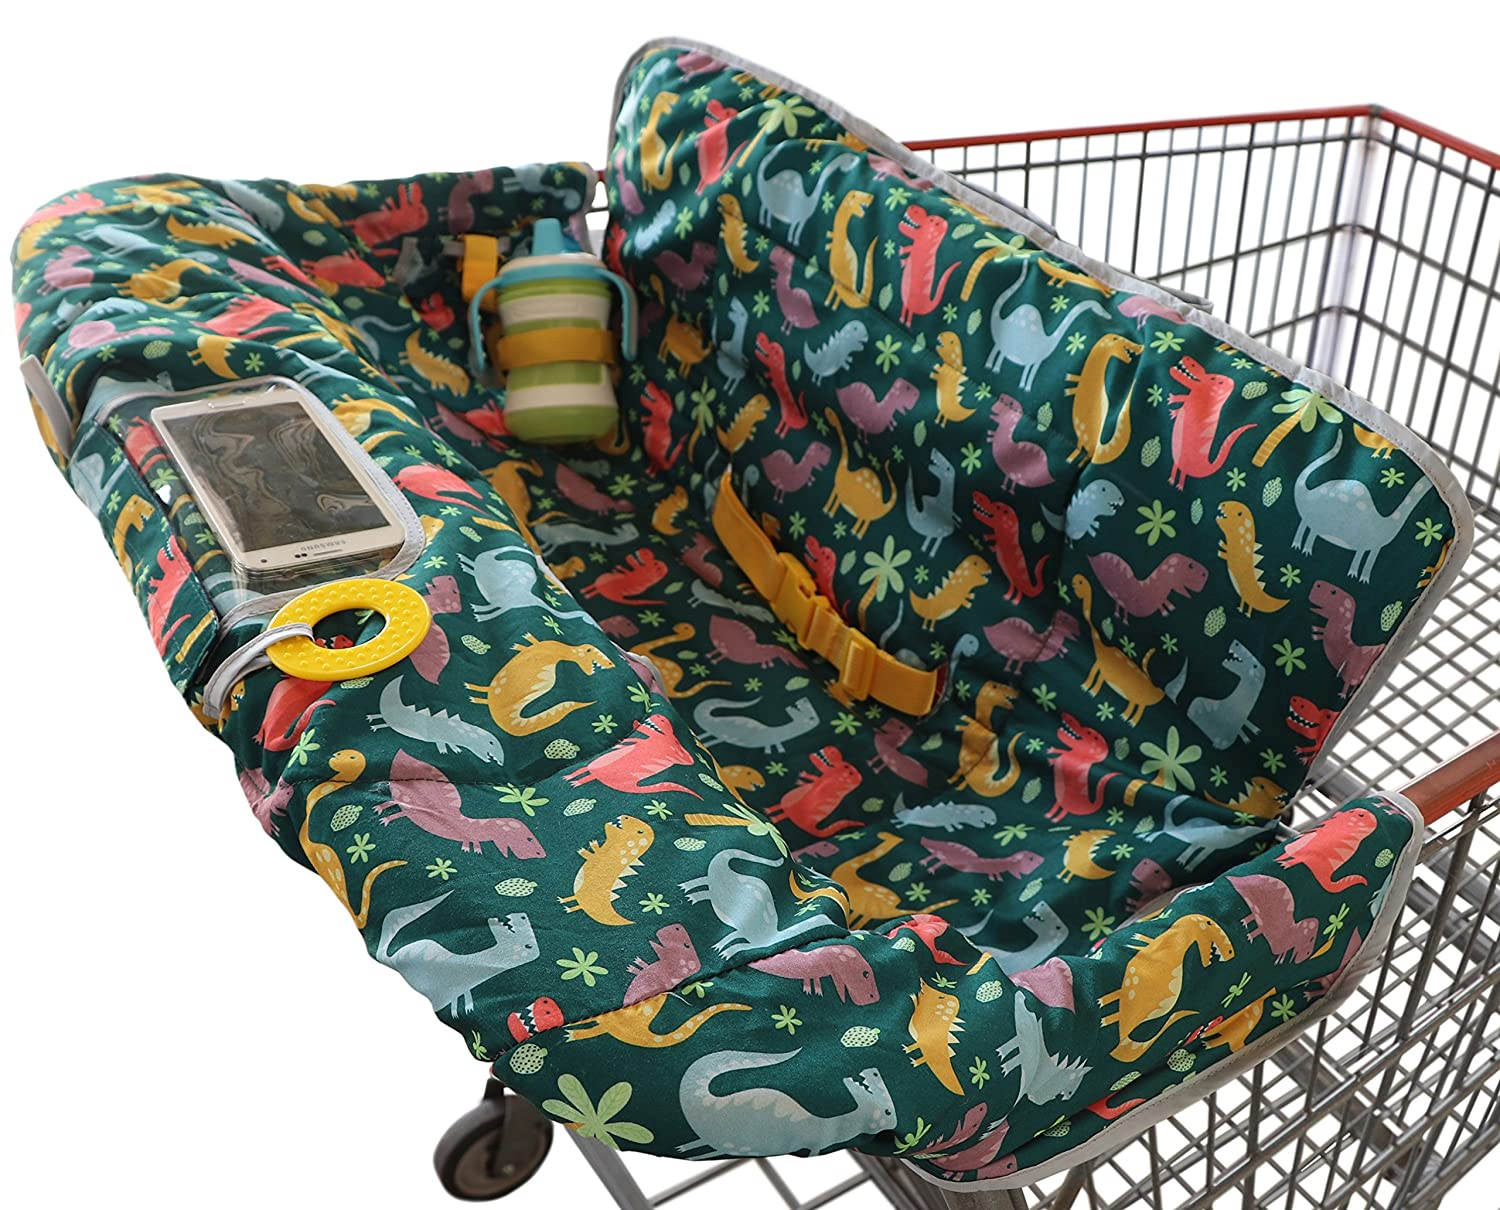 Suessie Shopping Trolley Cover for Baby or Toddler - 2-in-1 Highchair Cover